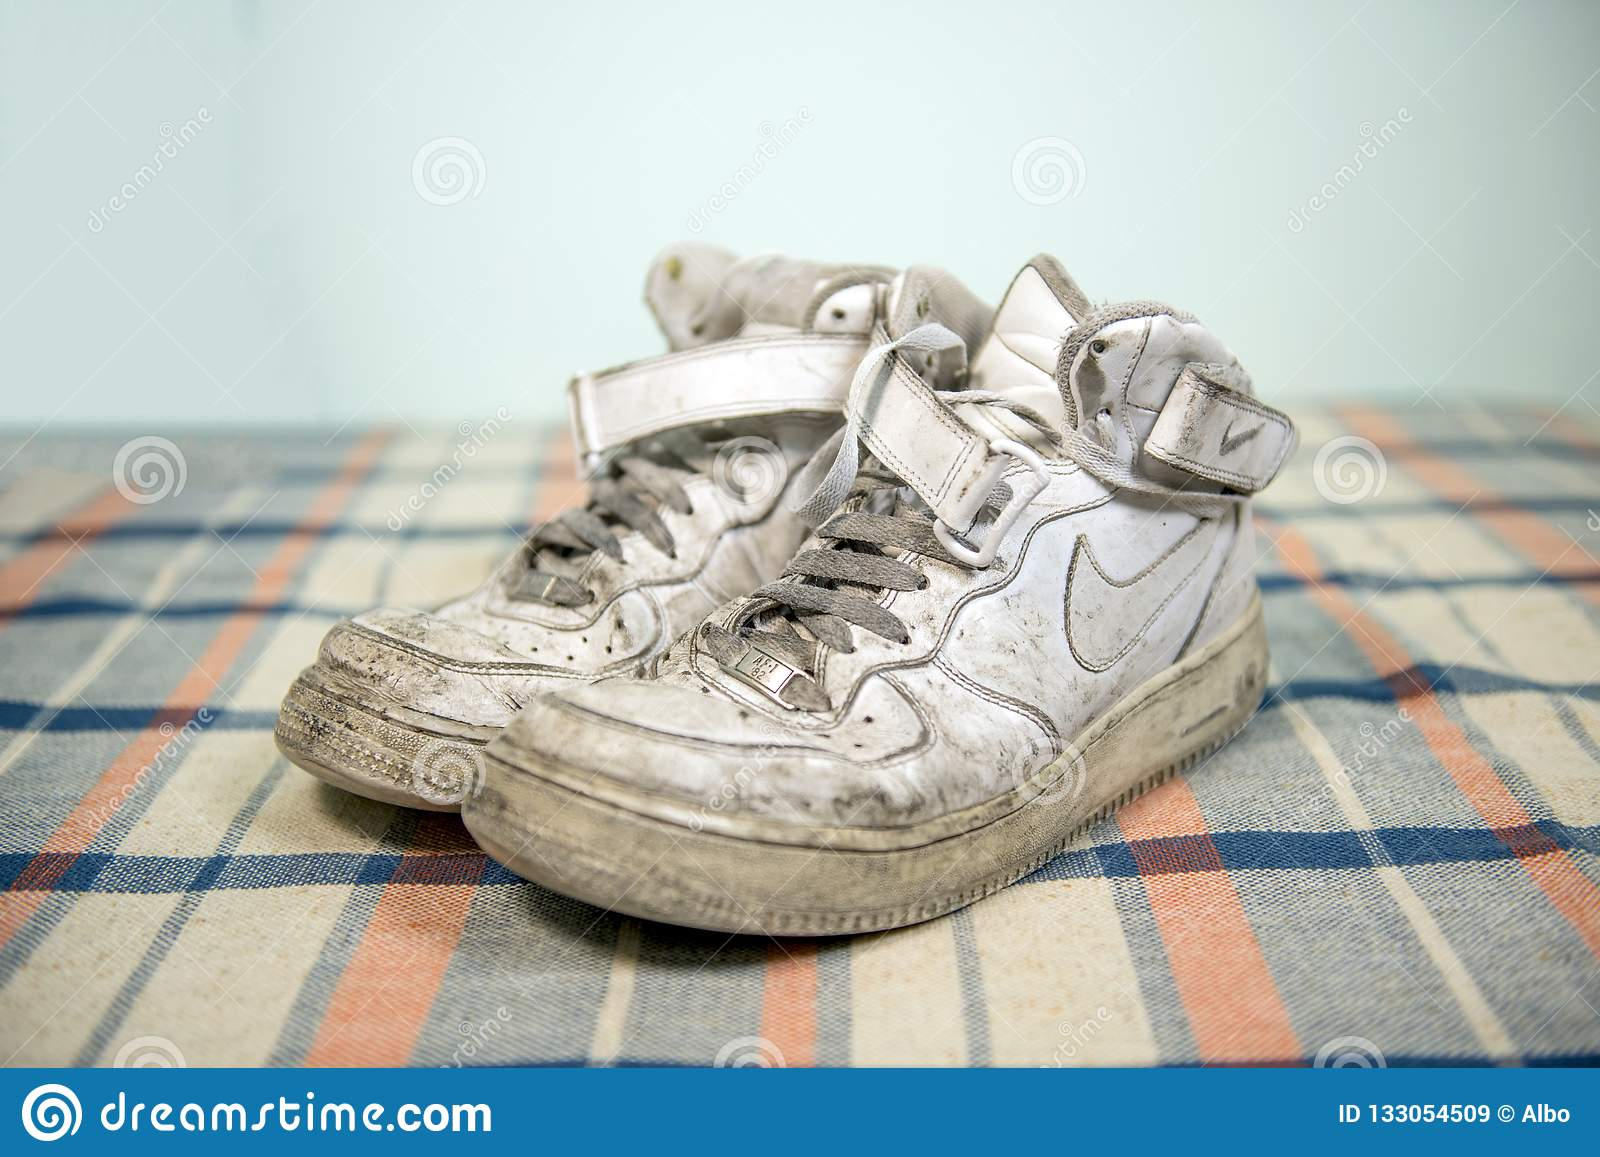 Chaussures De Nike Air Force One Image stock éditorial